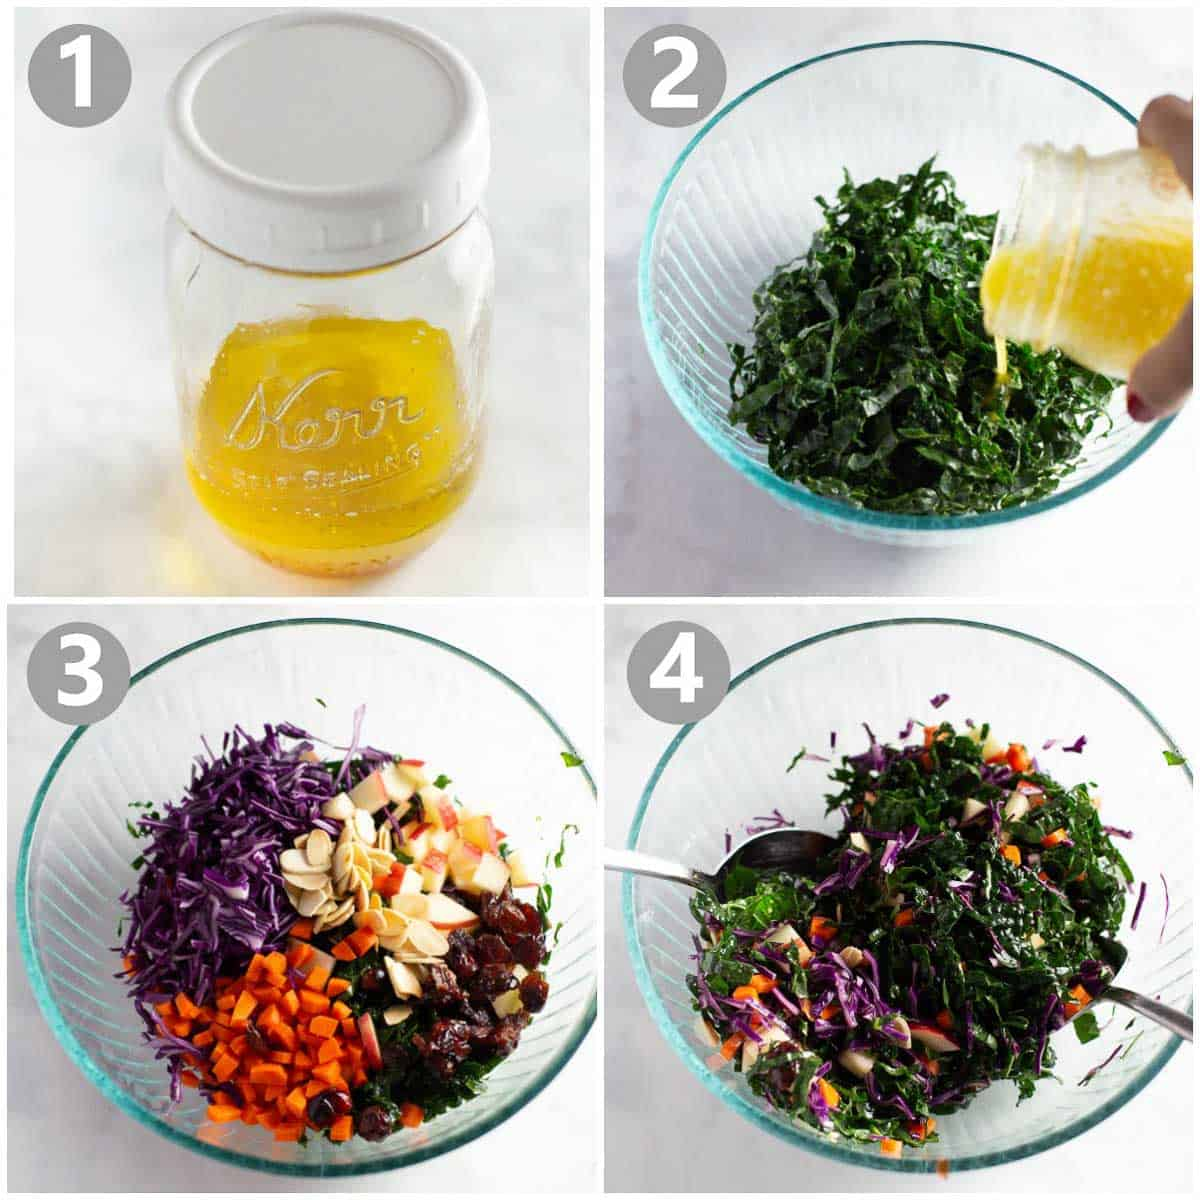 step-by-step instructions for how to make kale salad